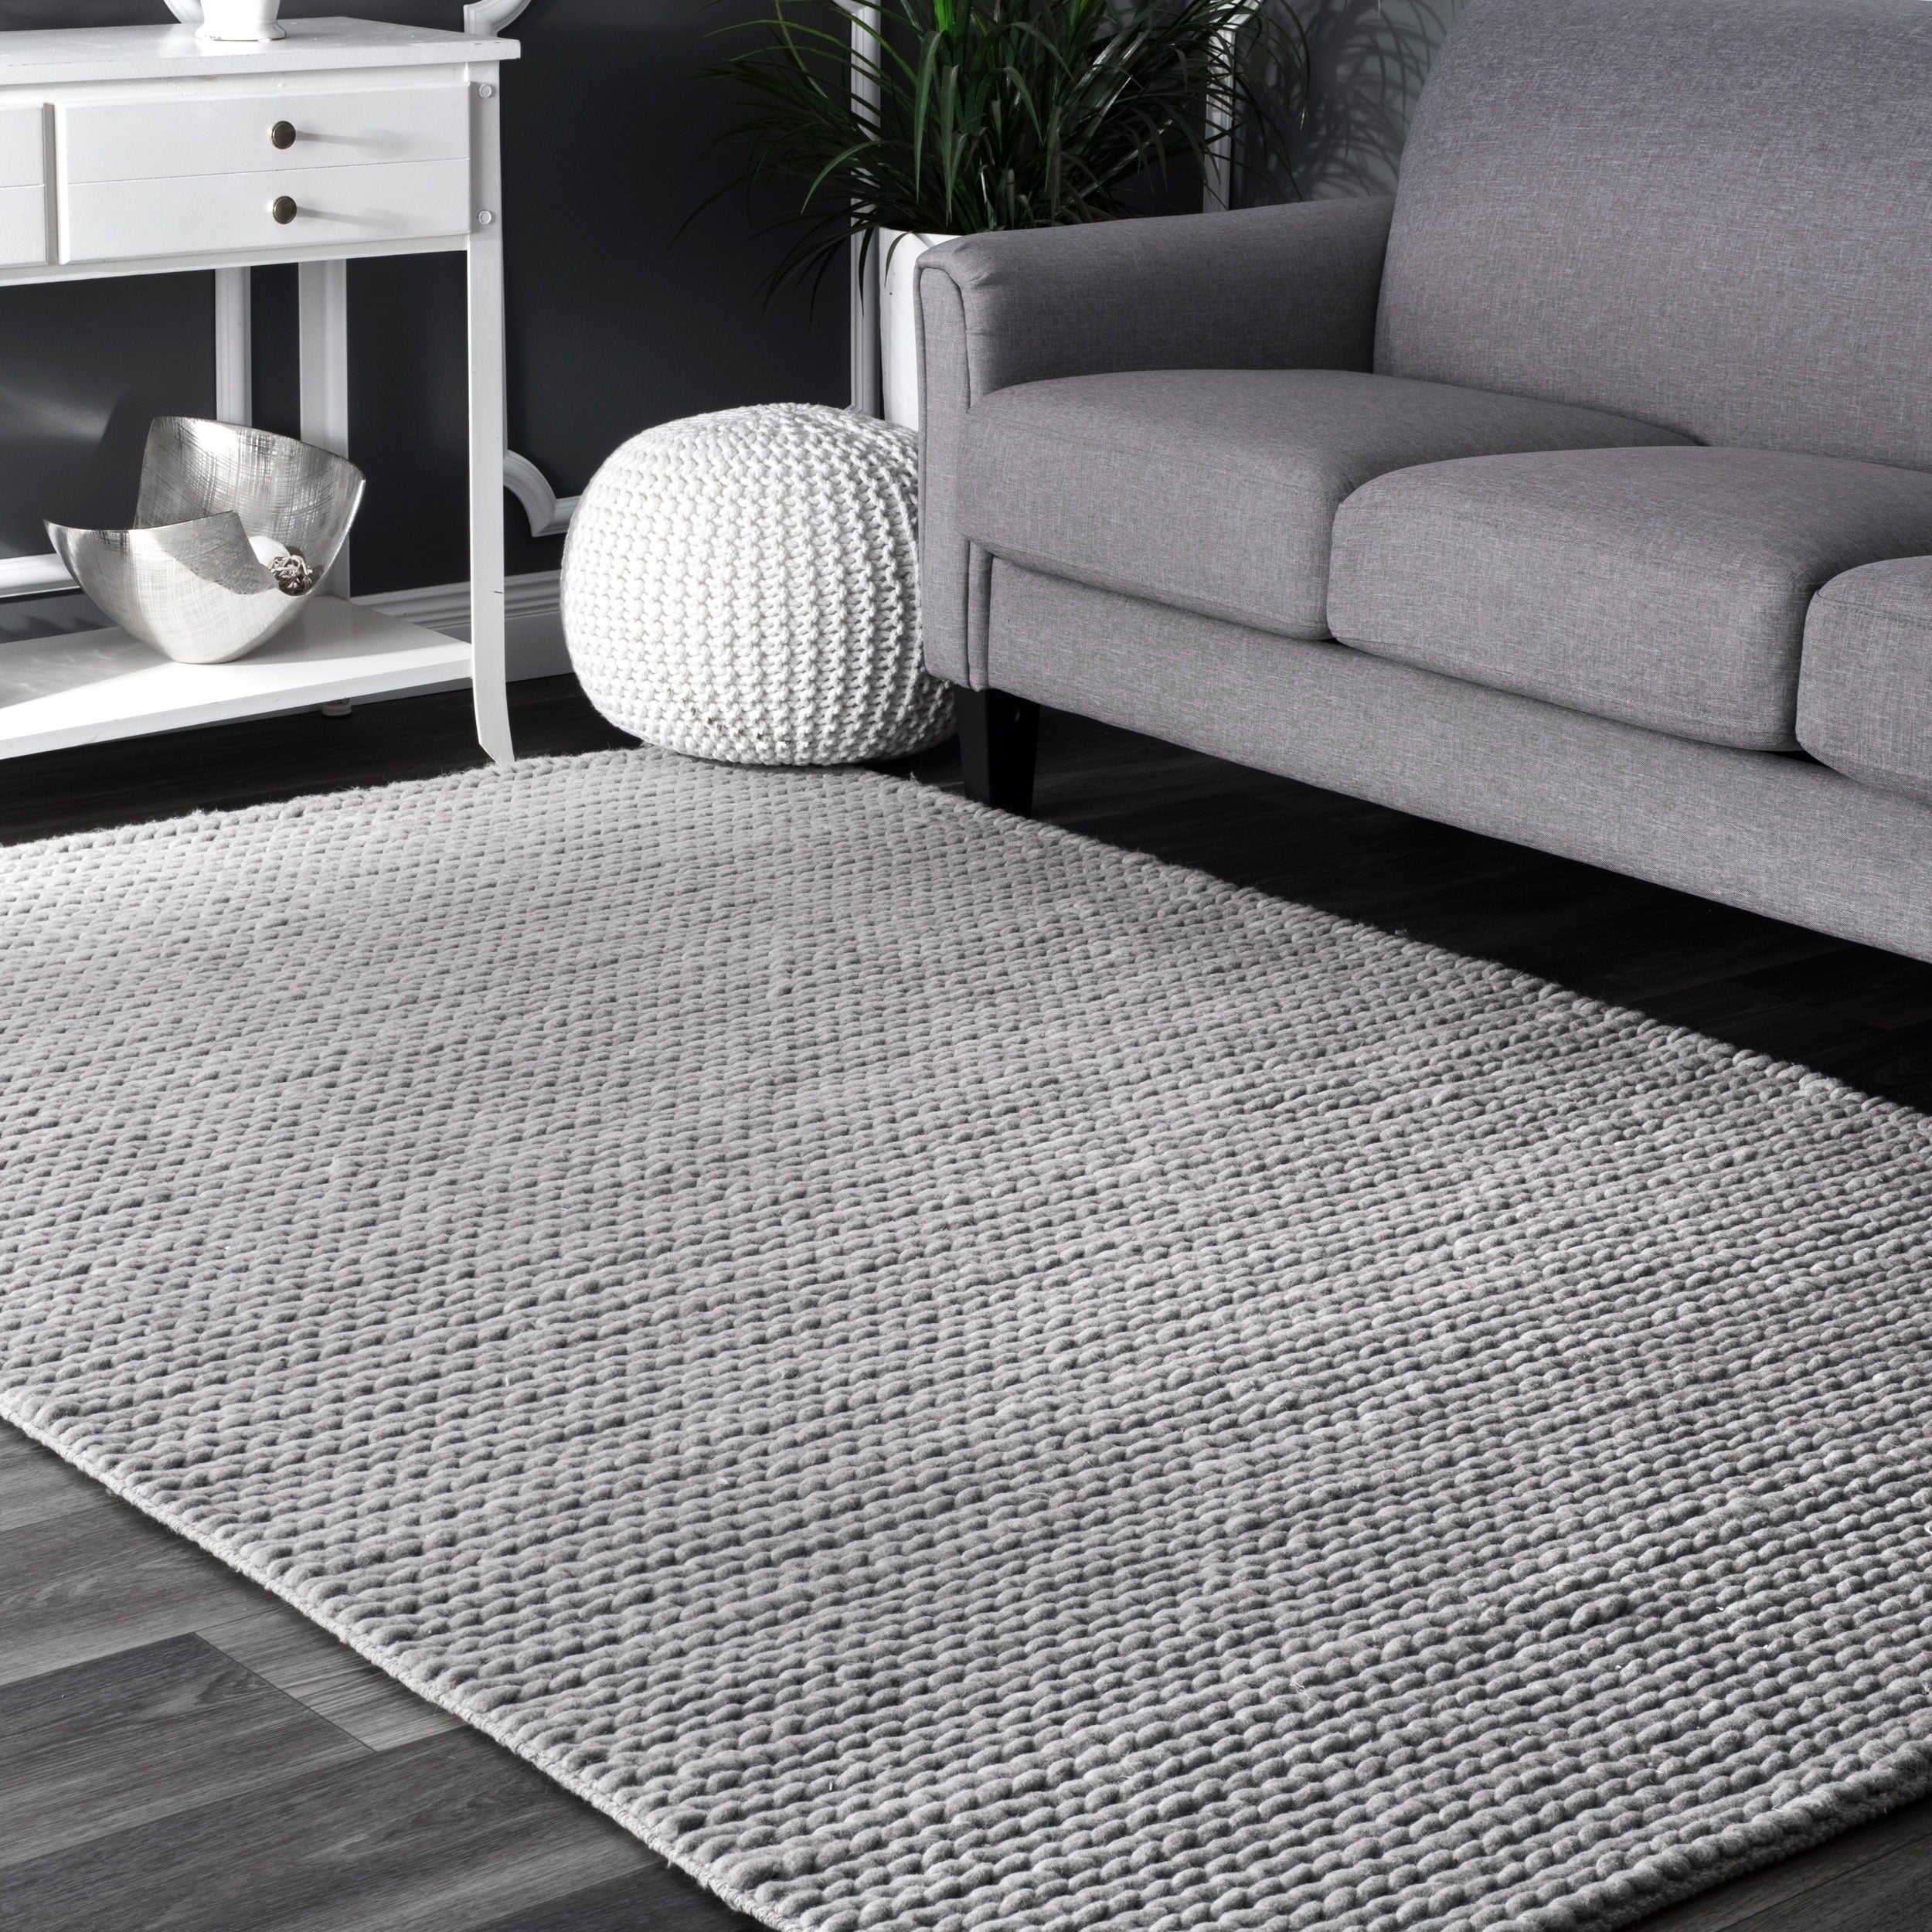 Nuloom Handmade Braided Cable New Zealand Wool Rug 6 X 9 On Free Shipping Today 5804610